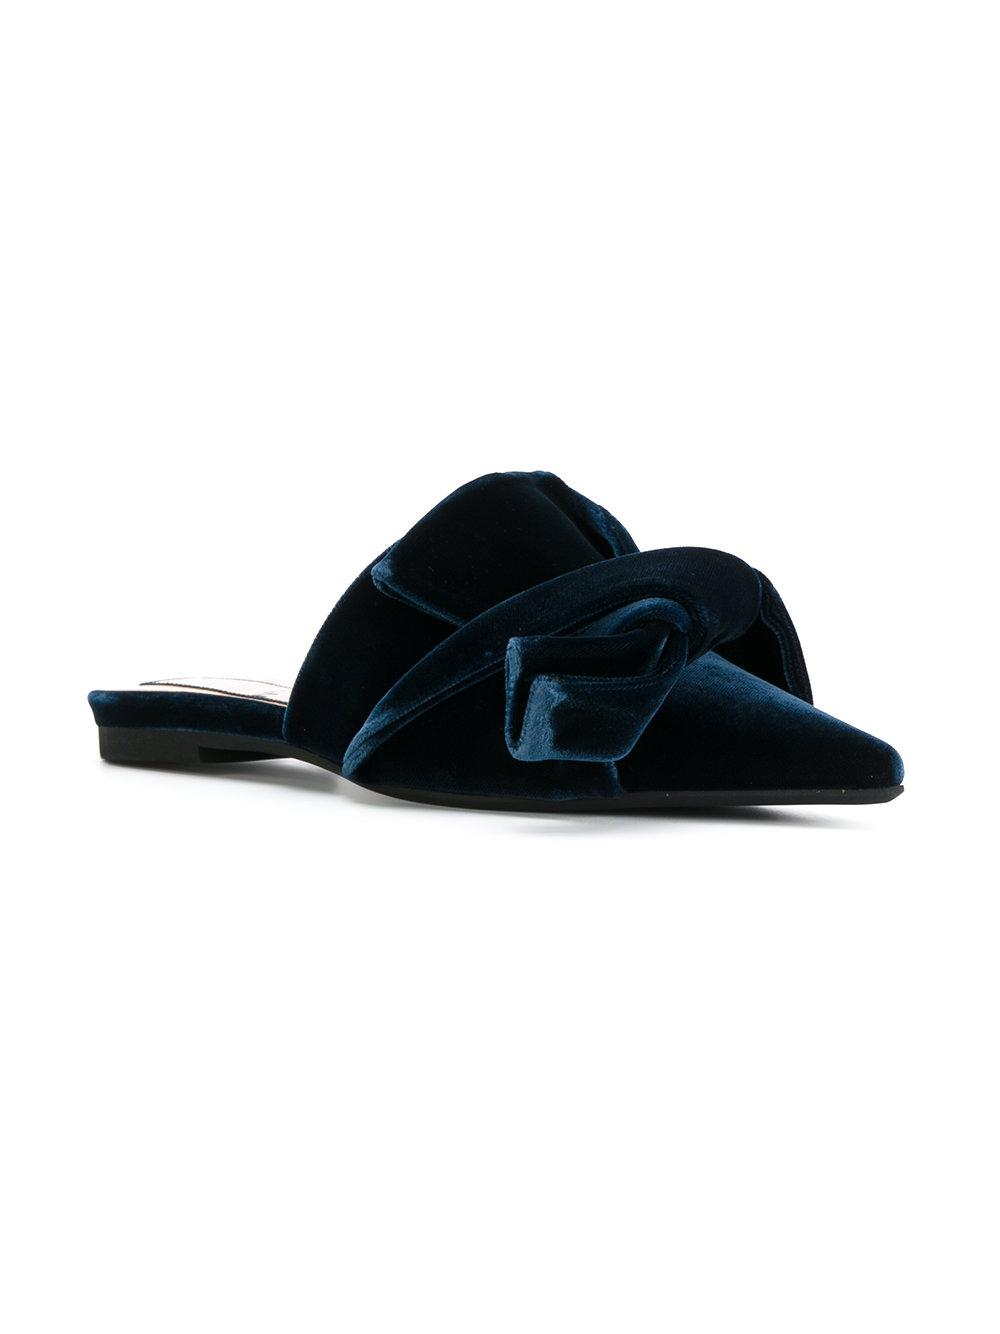 f0e04b09e91886 Lyst - N°21 Bow Front Slippers in Blue - Save 32%